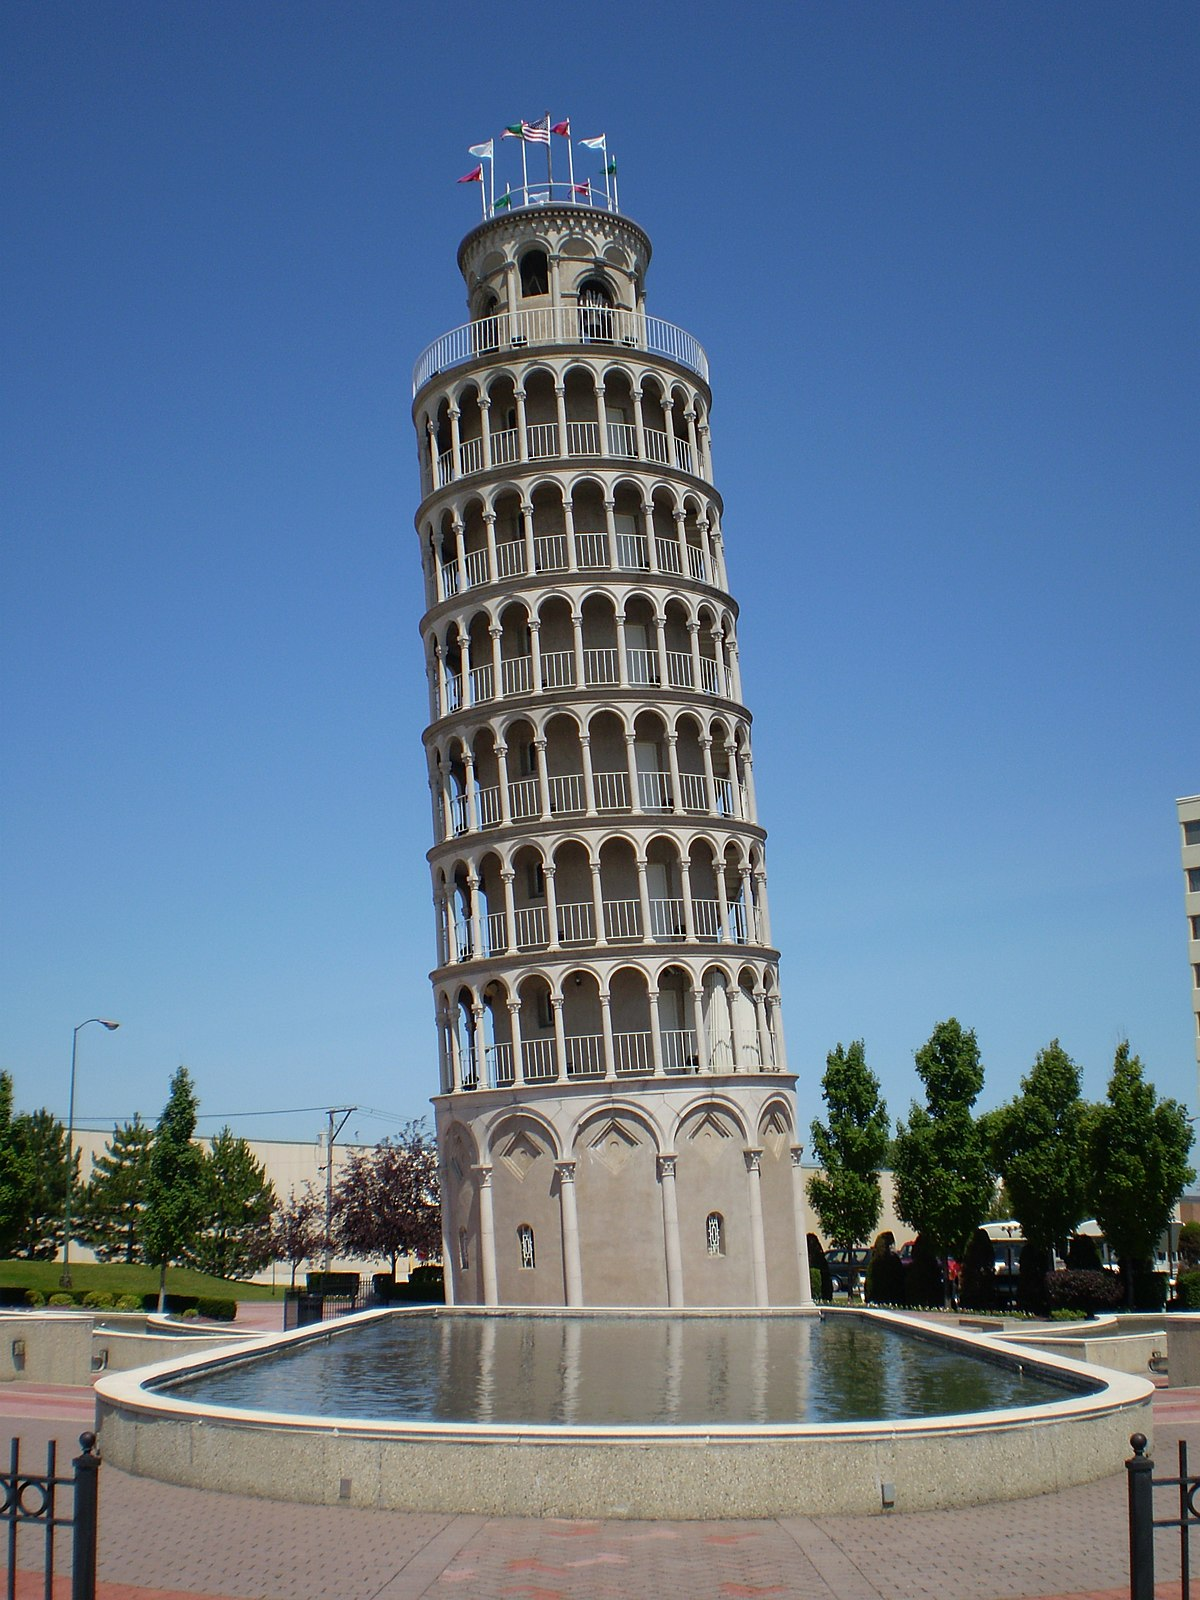 Location of the Leaning Tower